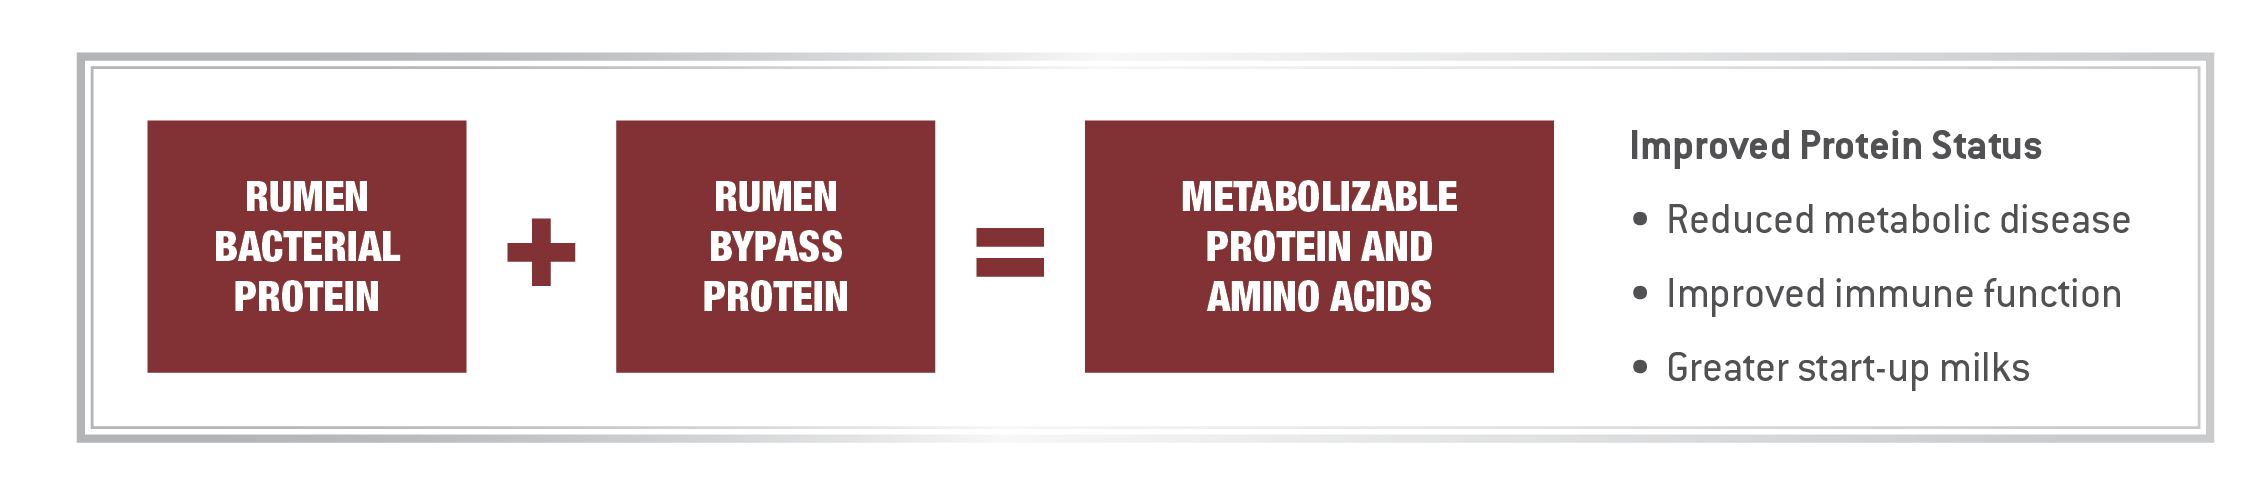 Metabolizable Protein Diagram